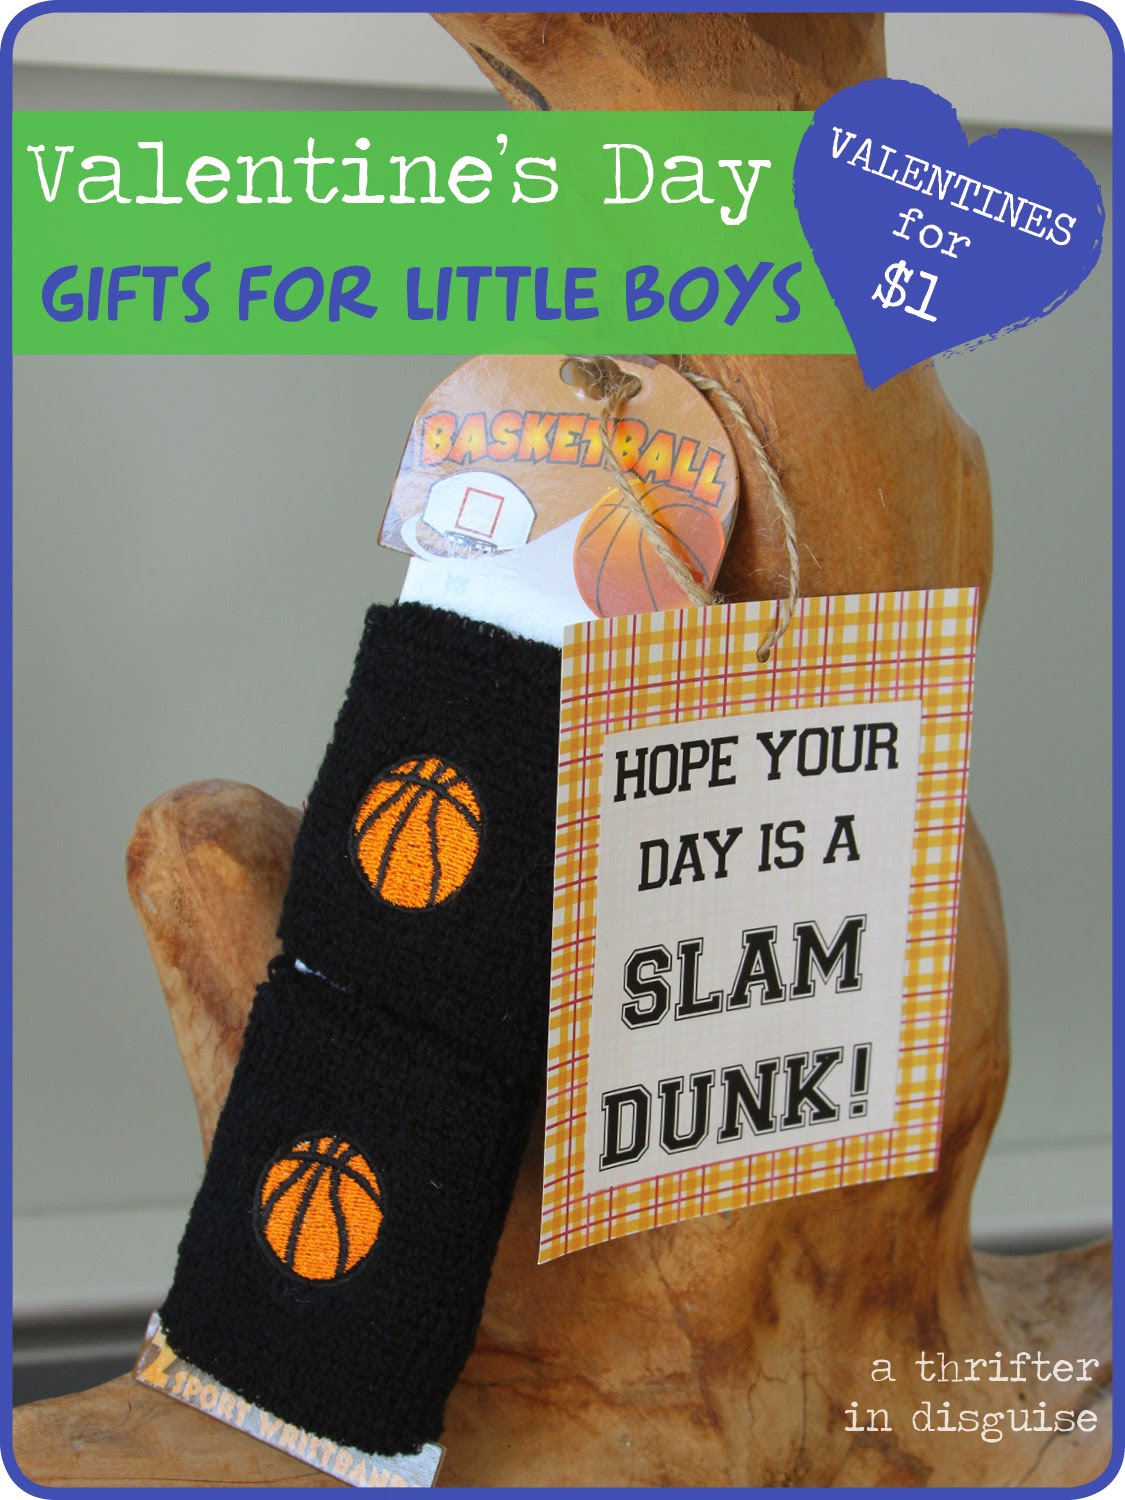 My 10 Best Gifts for Basketball Lovers has something for every player and fan to enjoy. From prized collectibles to high-quality gear, they will love how cool, and useful these gifts are. From prized collectibles to high-quality gear, they will love how cool, and useful these gifts are.